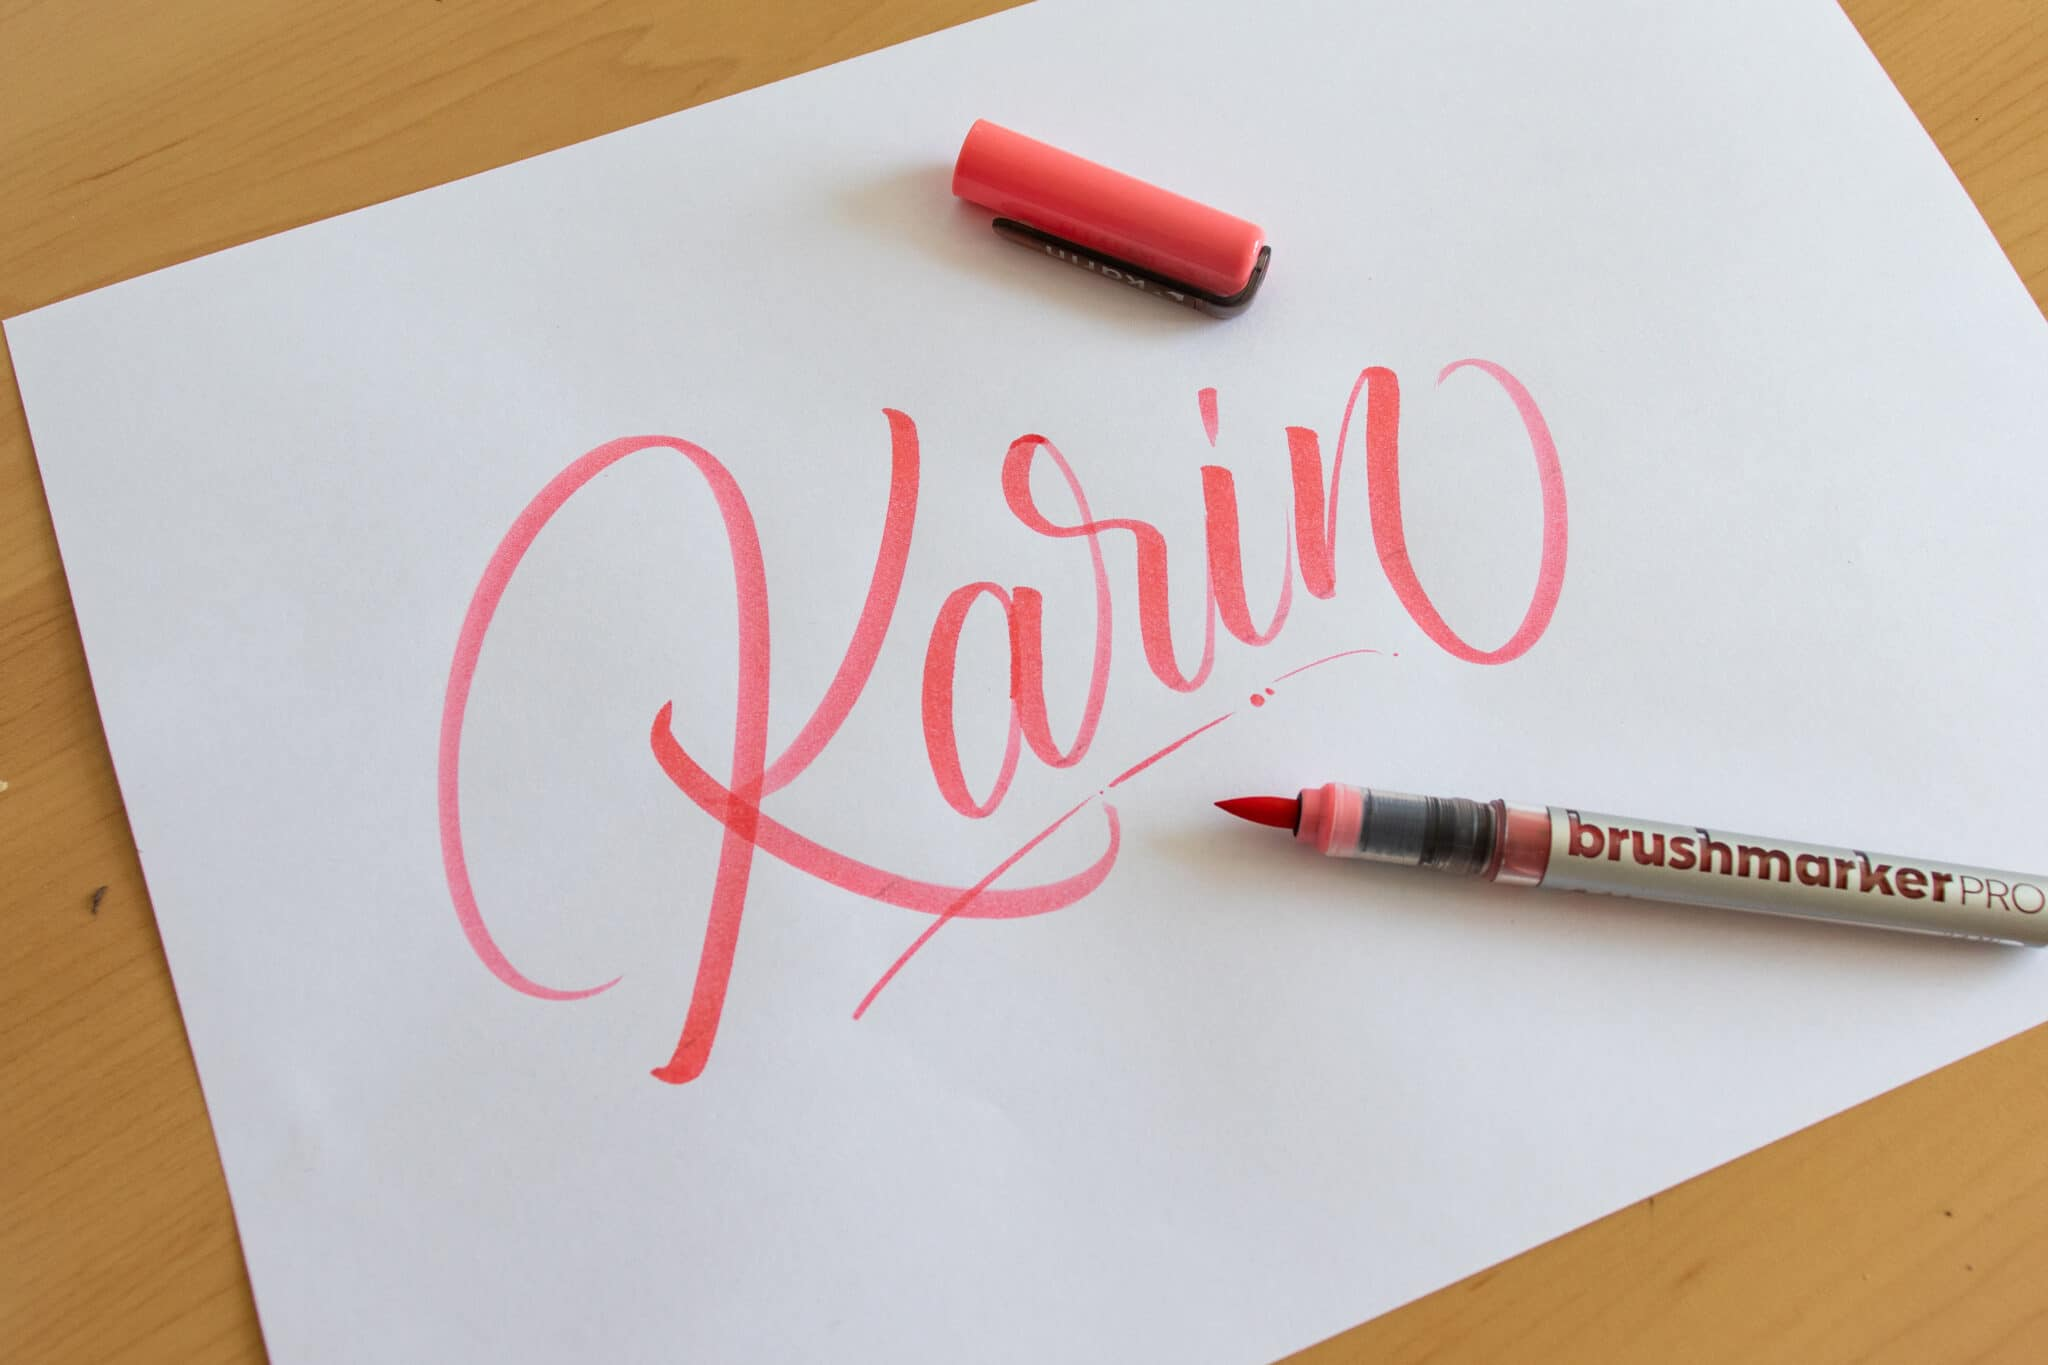 Karin Brushmarker PRO - sample calligraphy